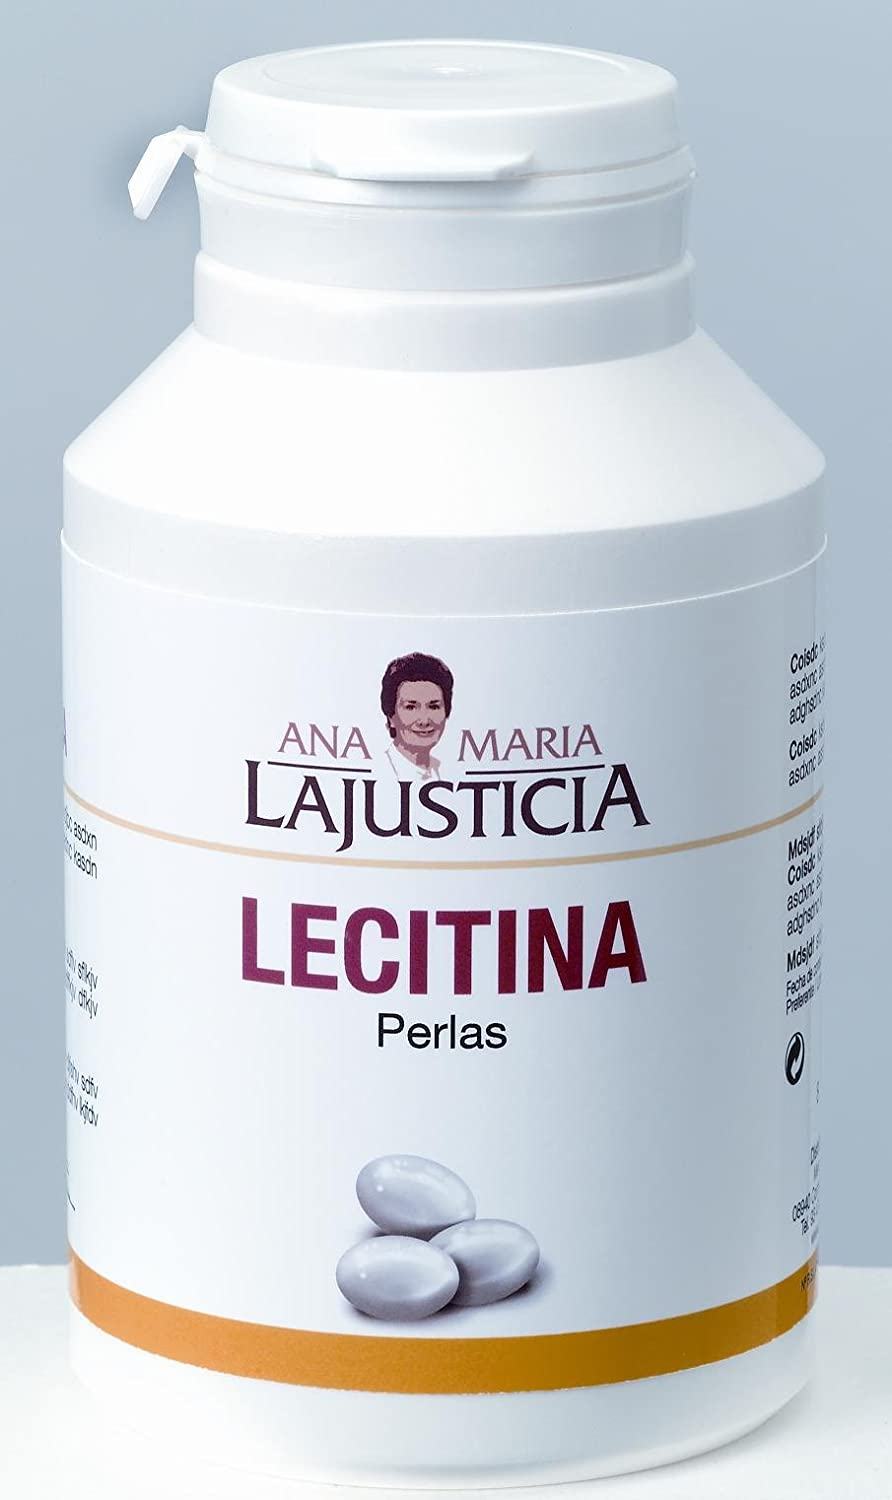 Amazon.com: ANA MARIA LAJUSTICIA LECITINA 300perlas: Health & Personal Care